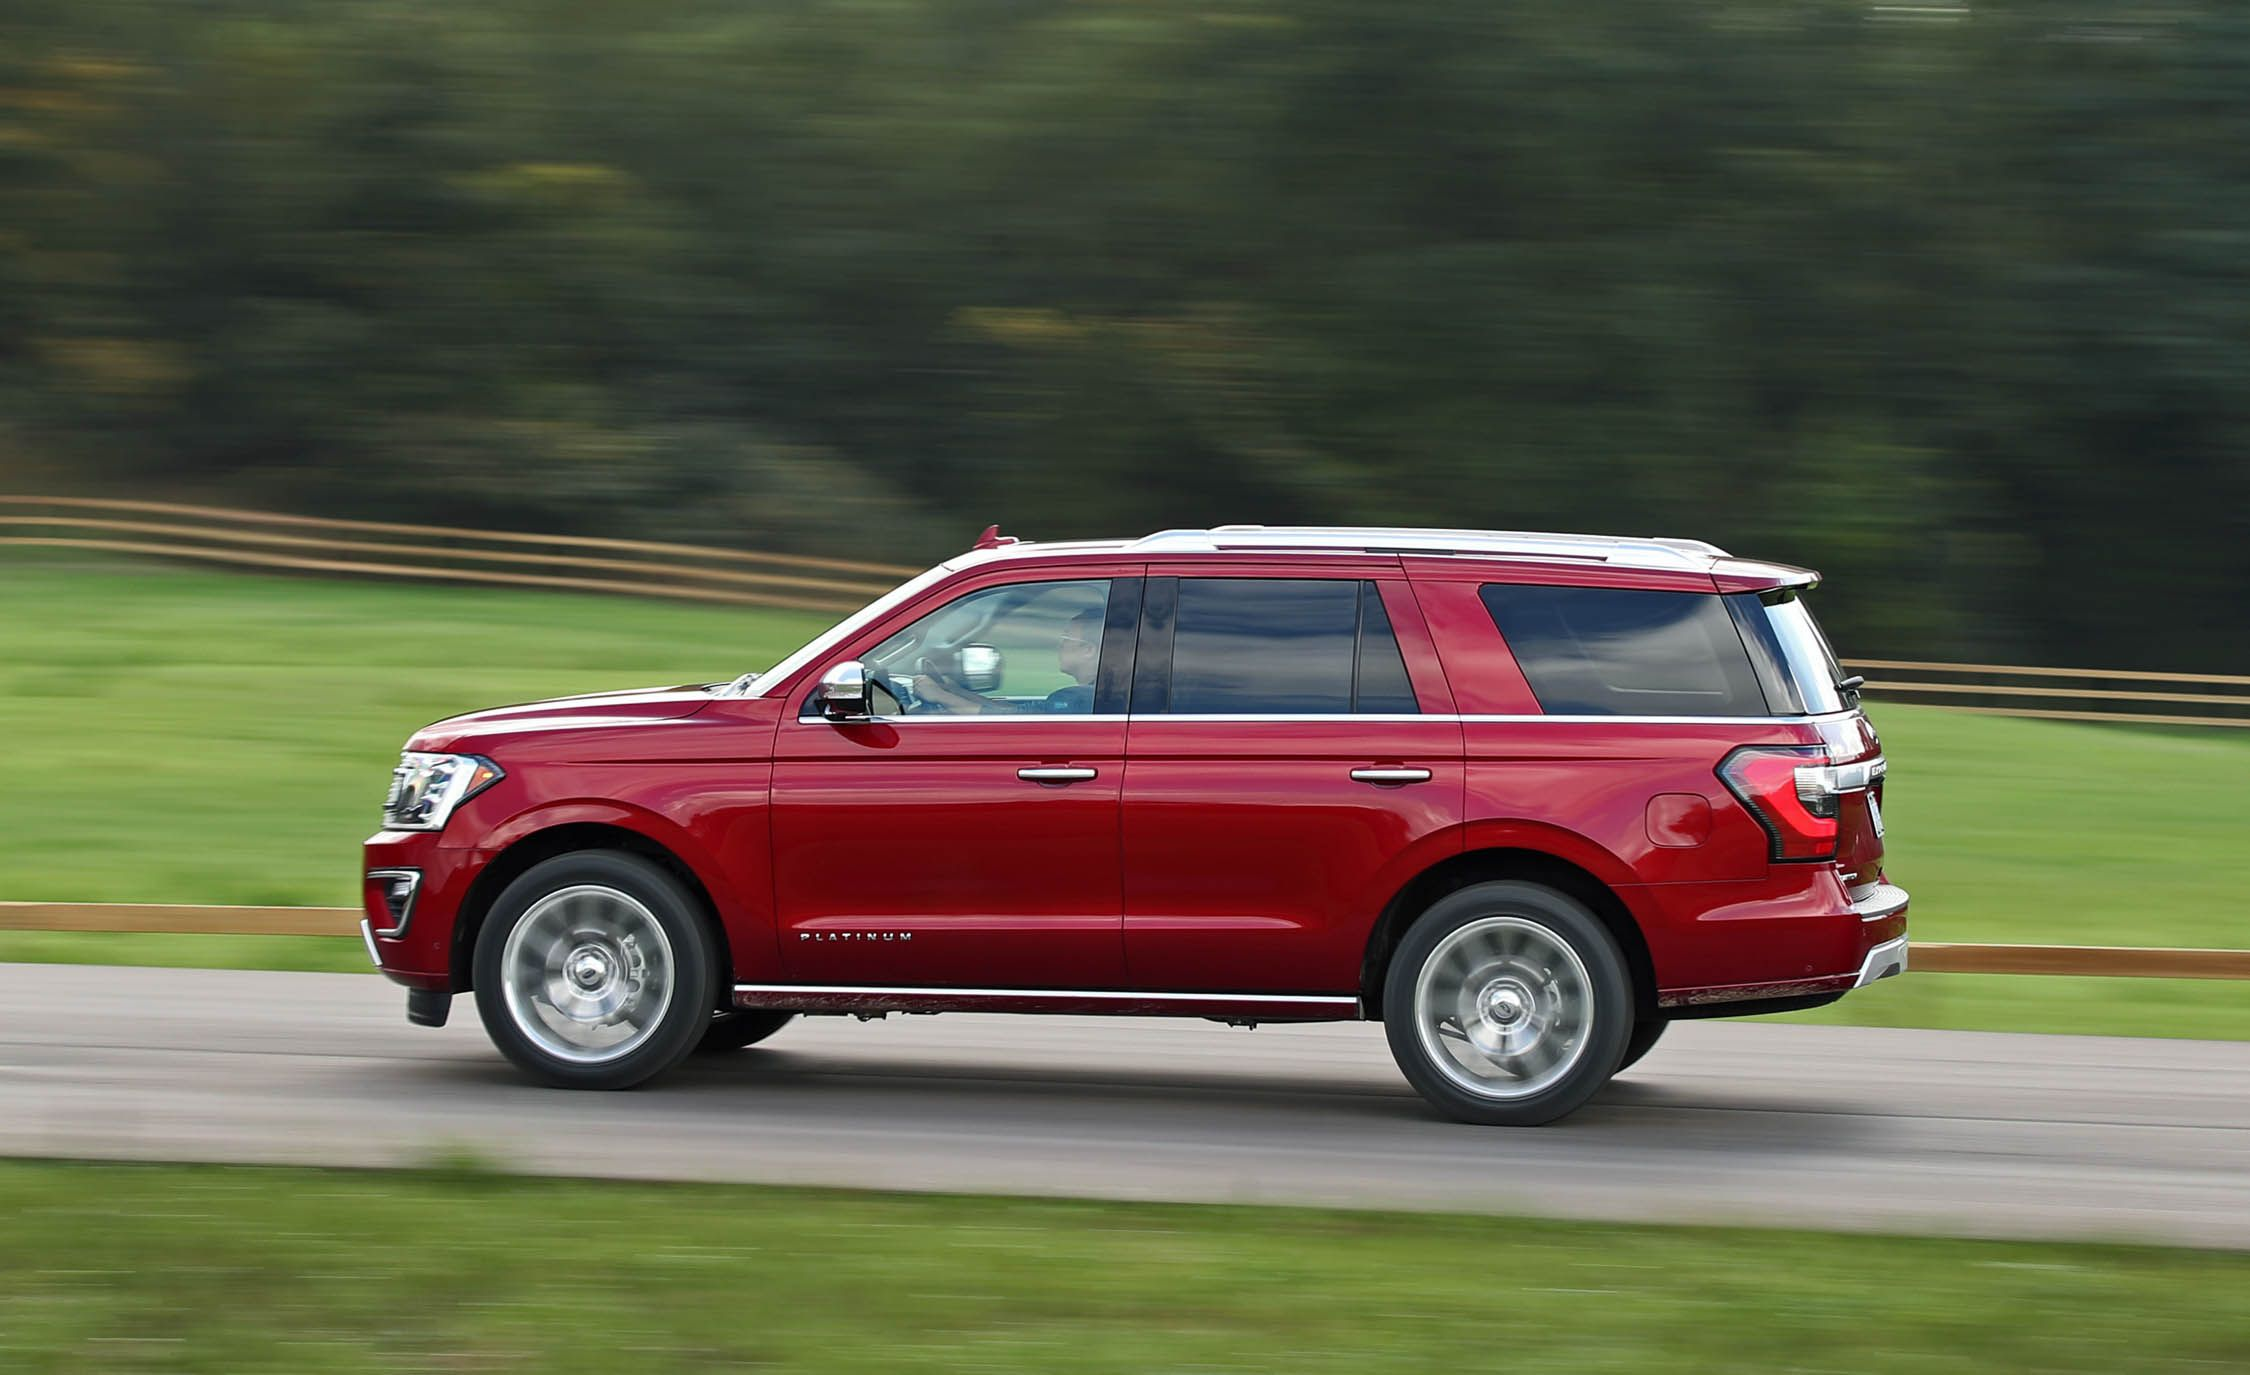 2018 ford expedition expedition max fuel economy and driving range review car and driver